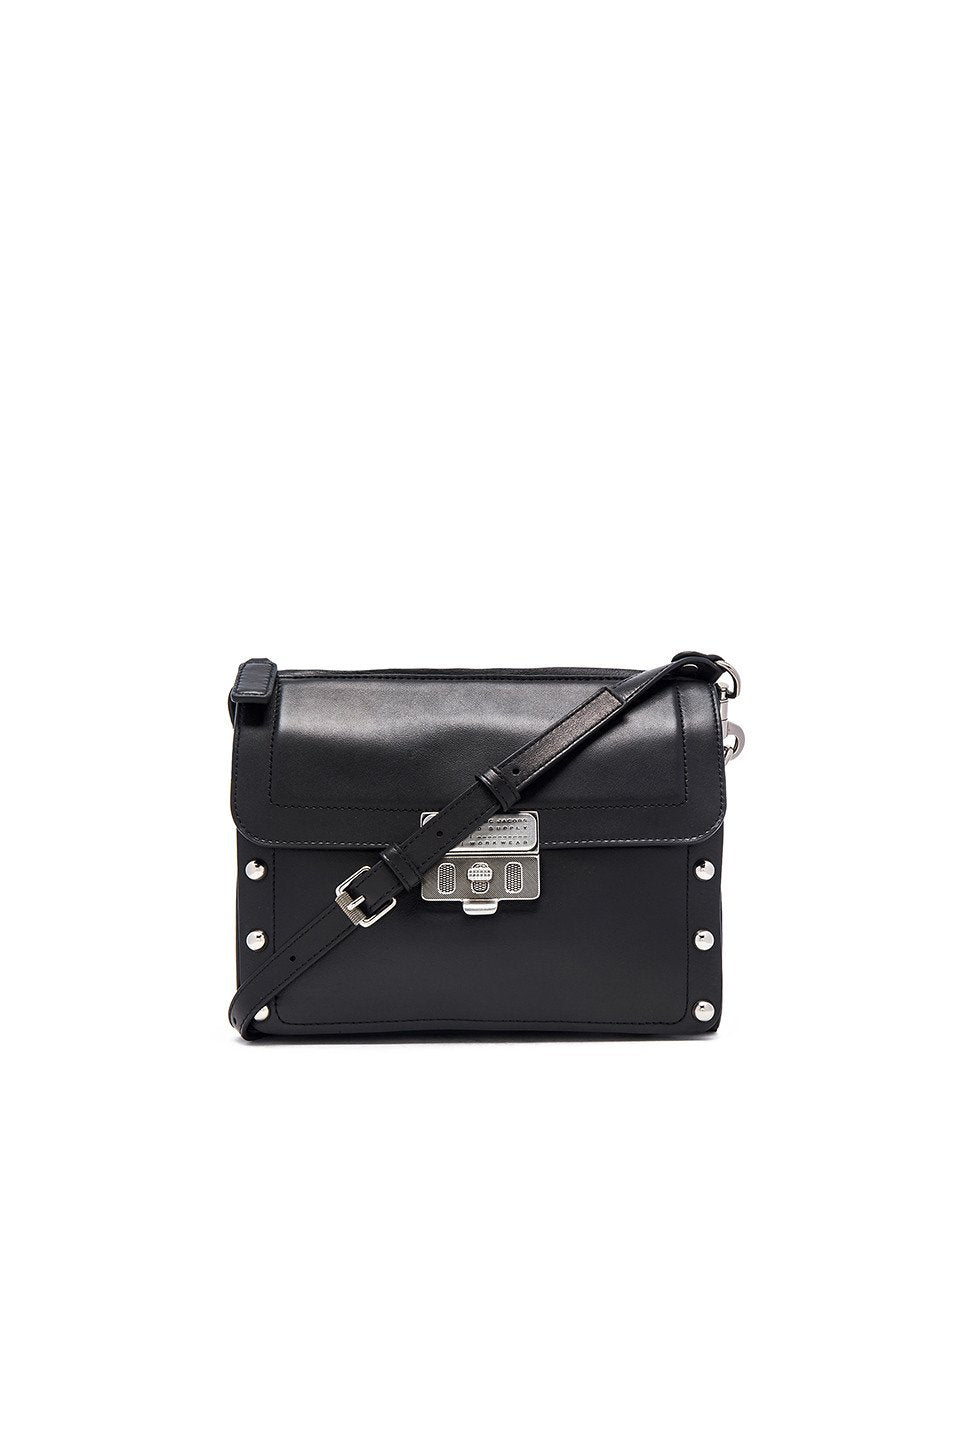 Espionage 25 Crossbody - Kustom Label - 1